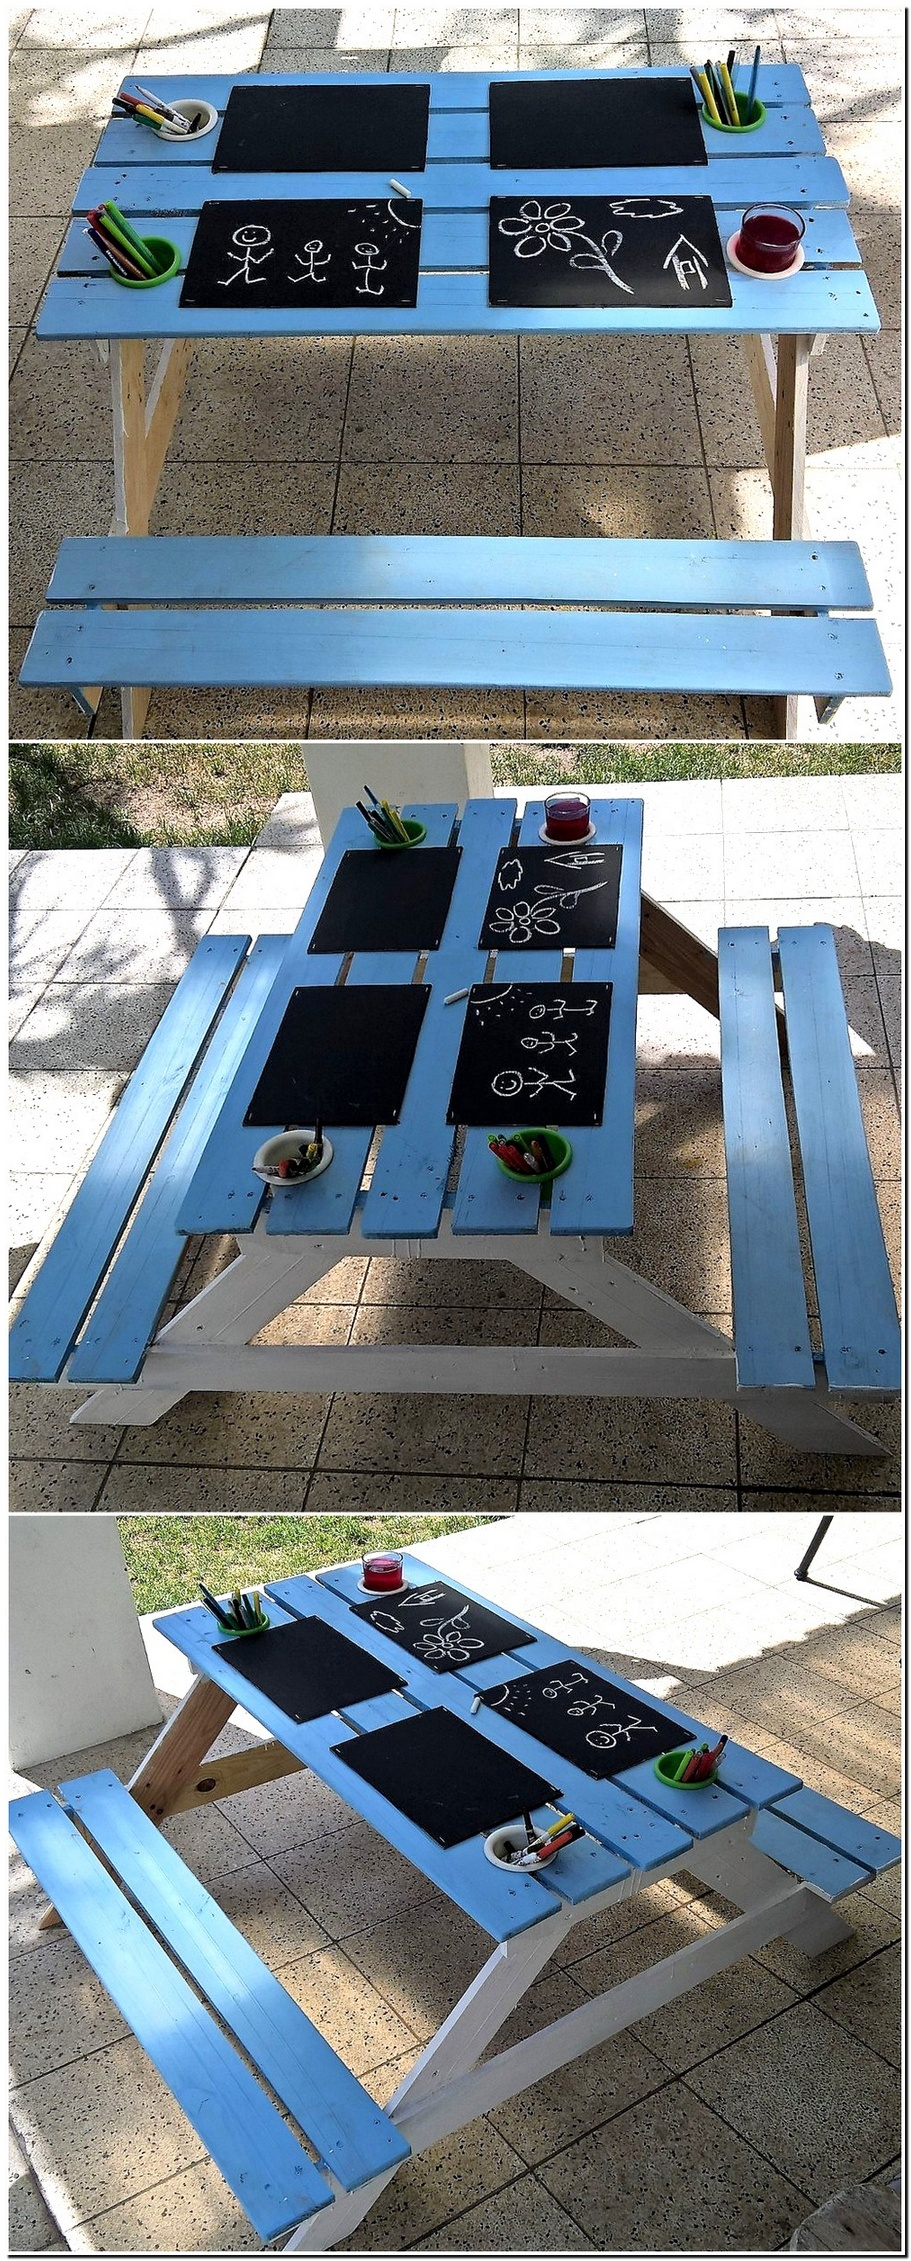 Baby Kiddies Pallets Picnic Table